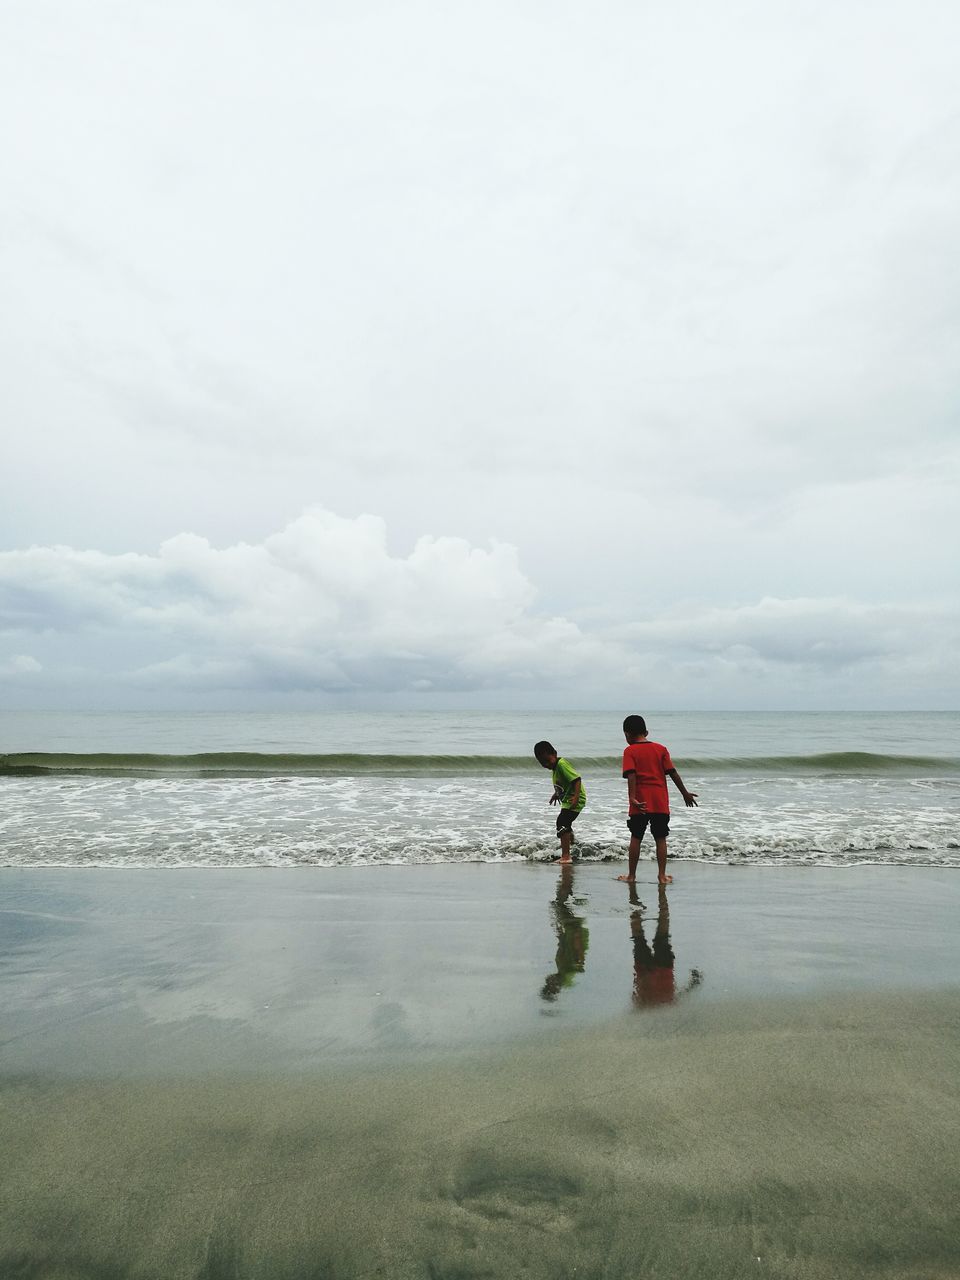 sea, full length, sky, nature, real people, water, family with one child, leisure activity, beach, cloud - sky, horizon over water, day, standing, father, beauty in nature, togetherness, boys, men, lifestyles, vacations, outdoors, scenics, son, motion, wave, childhood, sport, ankle deep in water, people